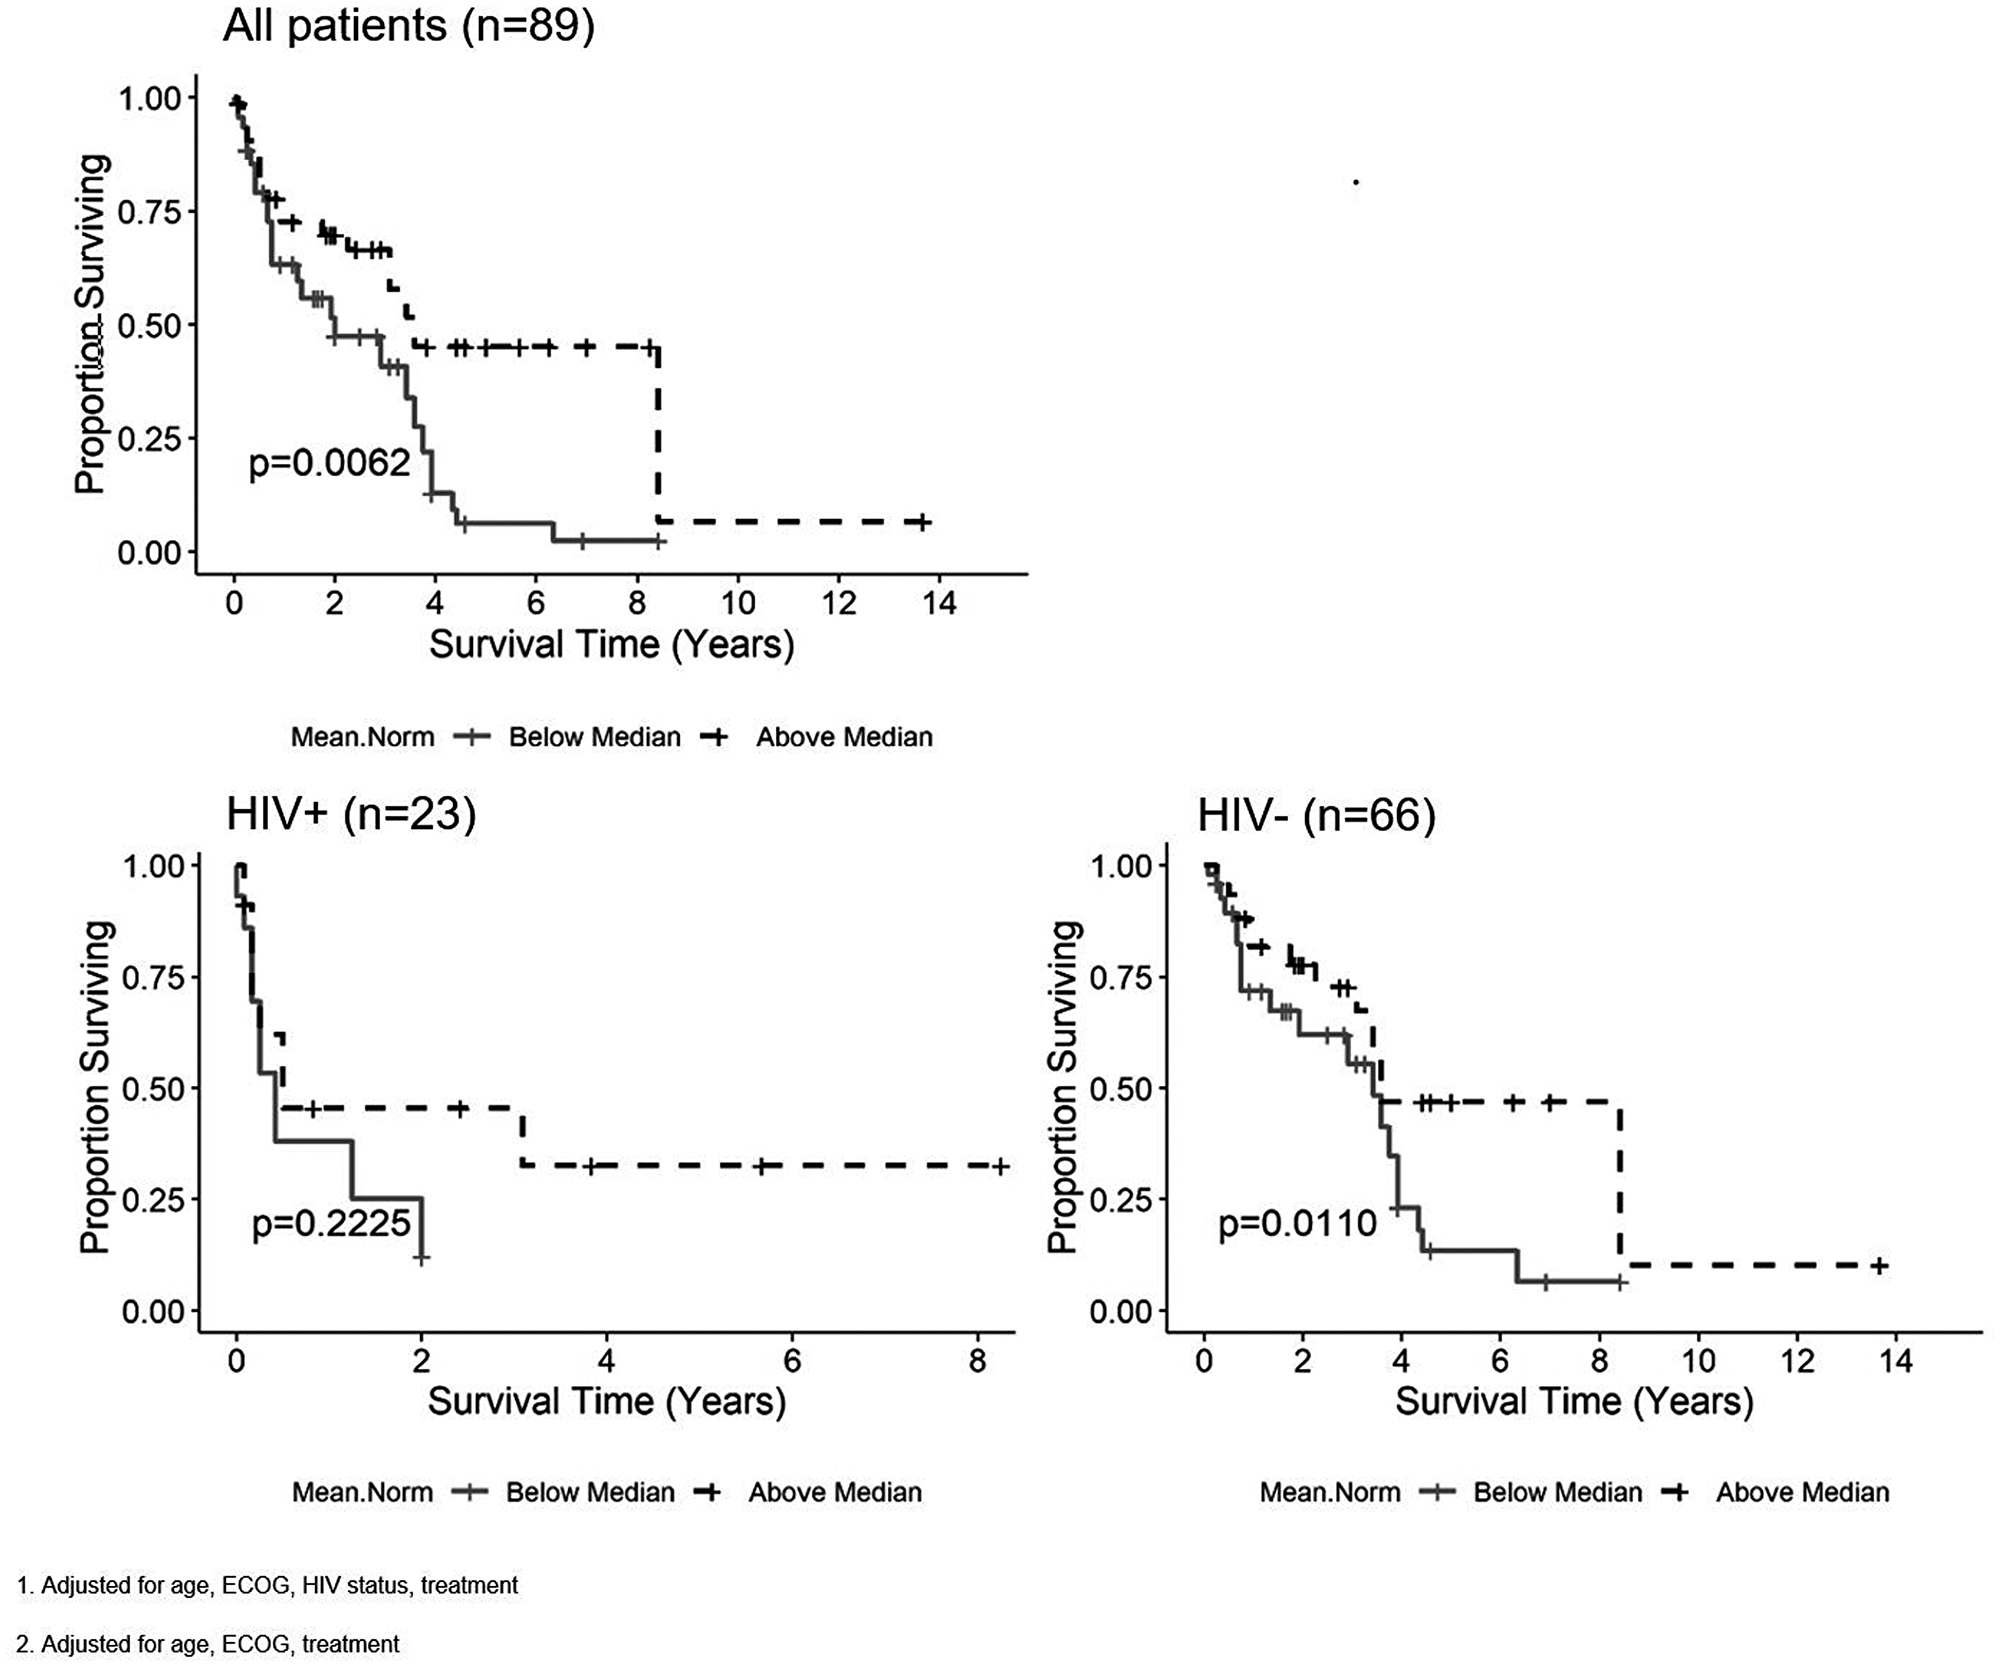 Kaplan-Meier curves for the nADCmean parameter and overall survival (OS) in all patients1, patients living with HIV2 (PLWH) and HIV negative patients2.